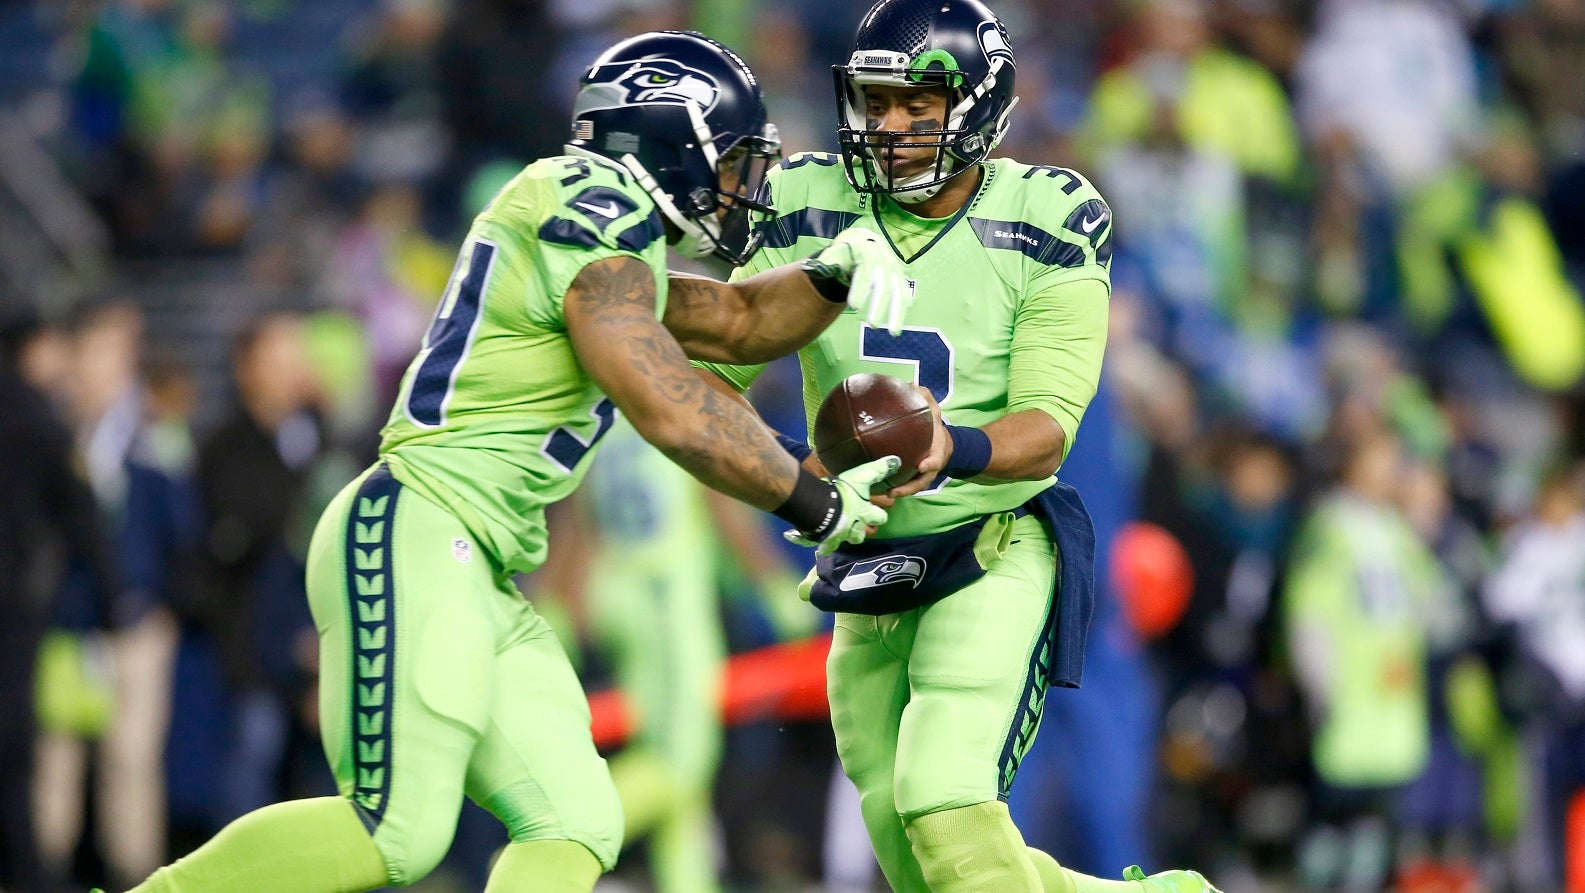 timeless design a4369 deda9 Fans blast Seahawks' hideous 'color rush' jerseys on Twitter ...